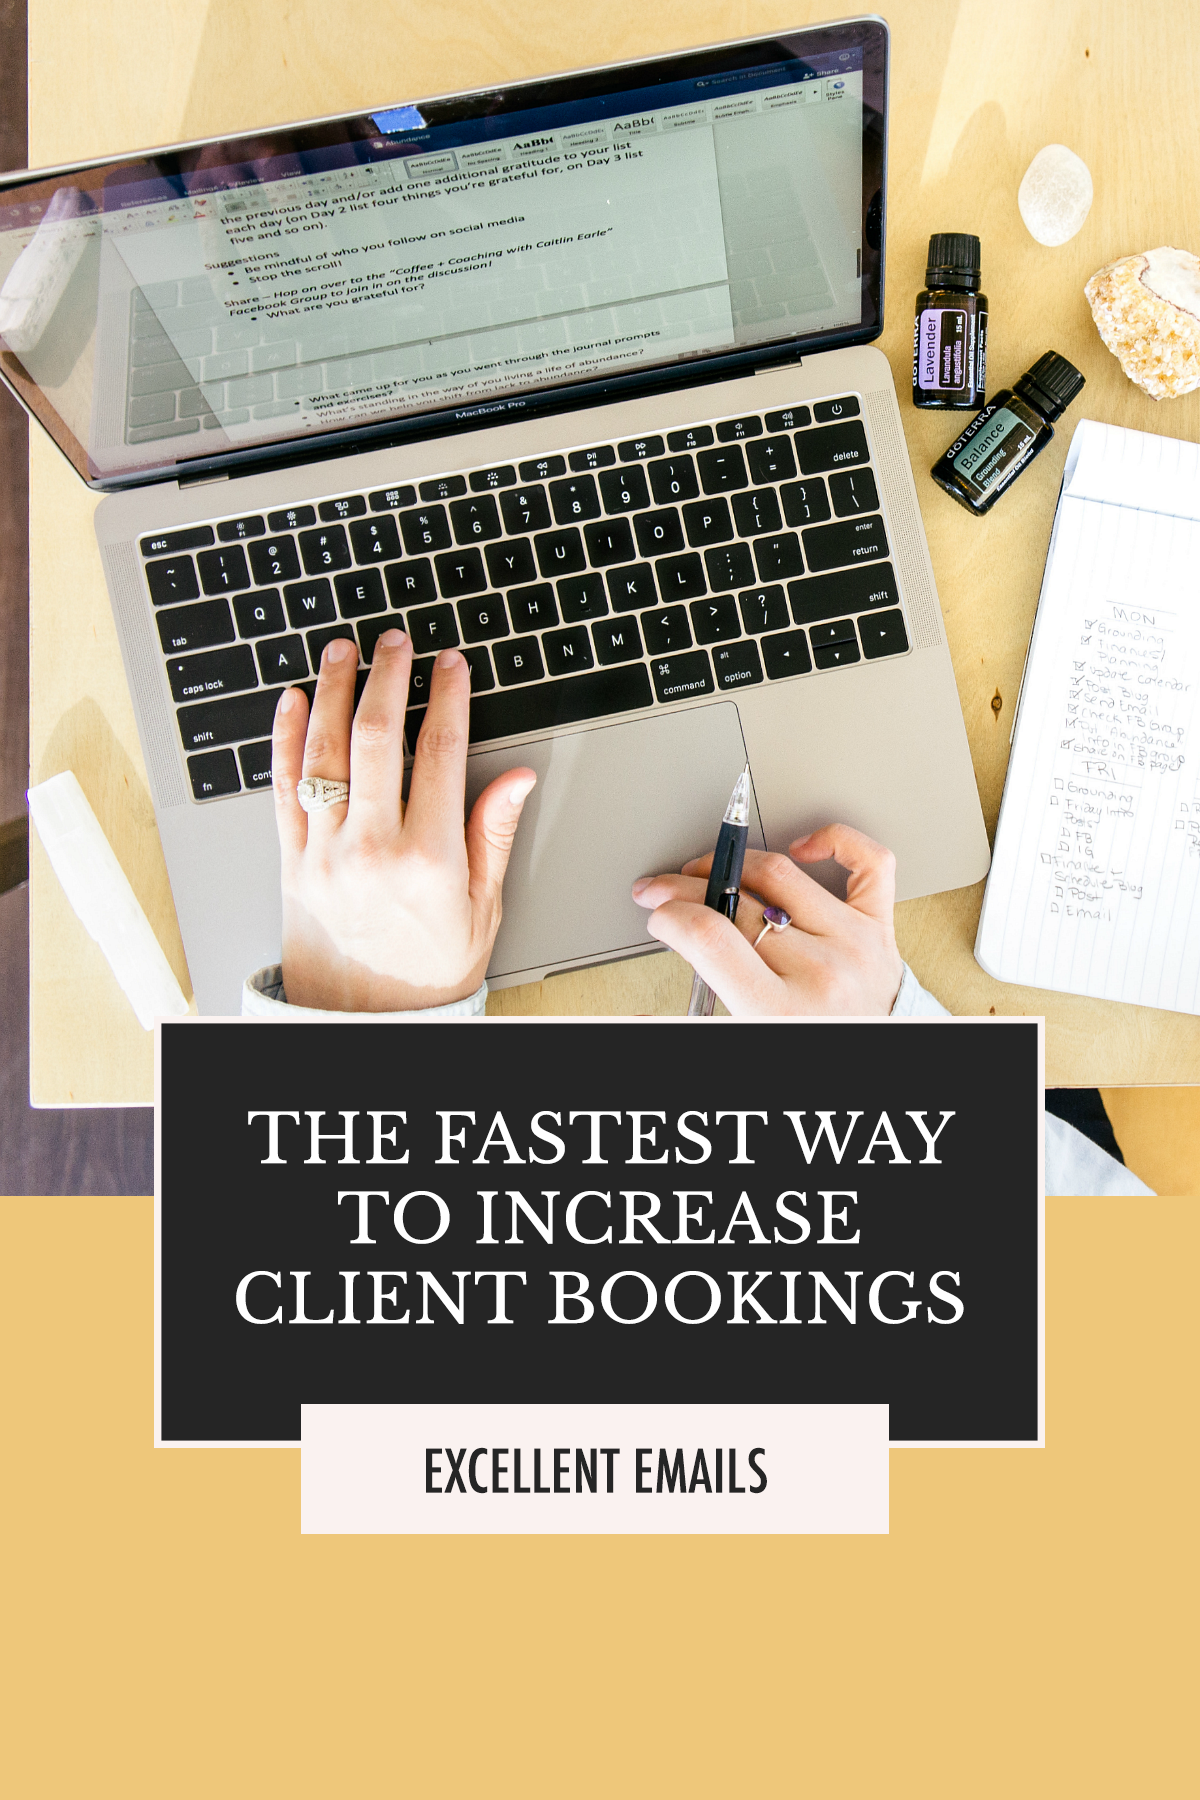 Are your email responses sending potential clients away? Not on our watch! Here are 7 tips to secure clients from email inquiries… with 3 free templates! | The Fastest Way to Increase Your Client Bookings: Excellent Emails | Alexis the Greek blog